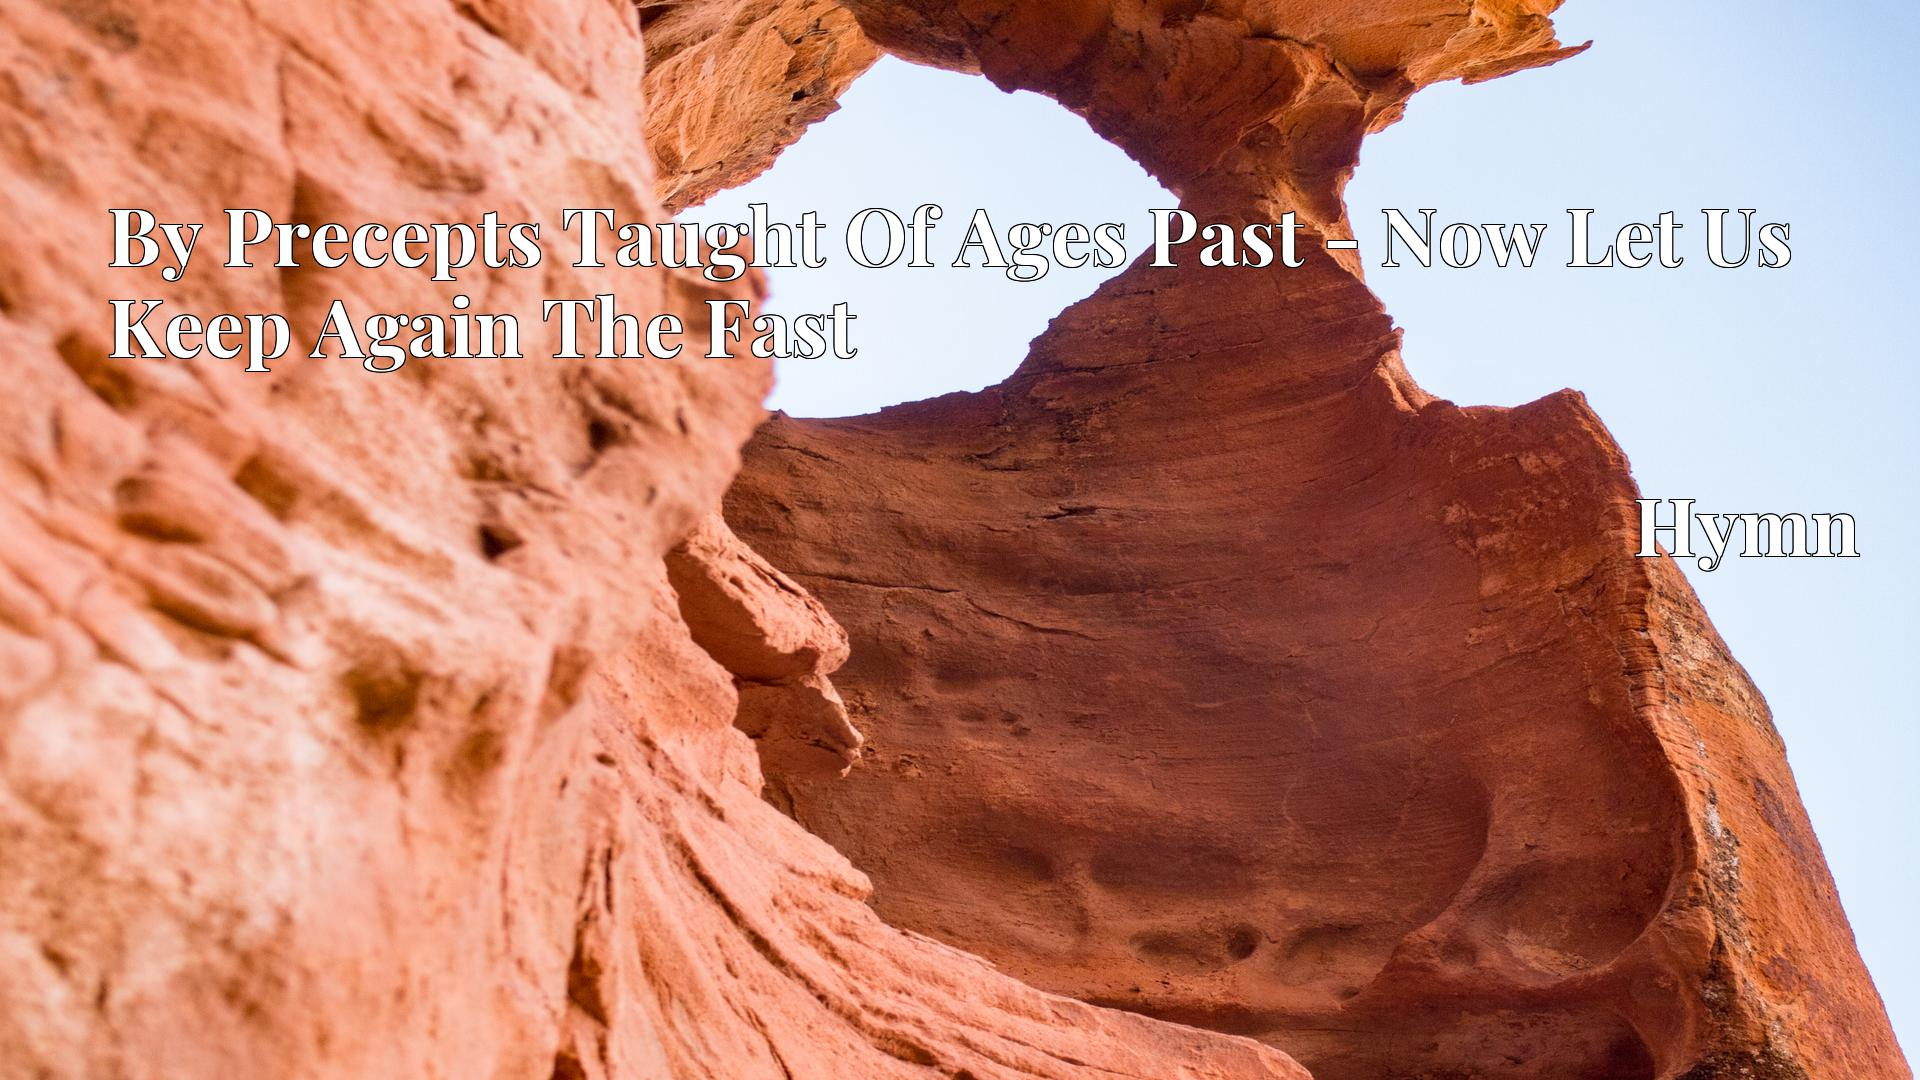 By Precepts Taught Of Ages Past - Now Let Us Keep Again The Fast - Hymn